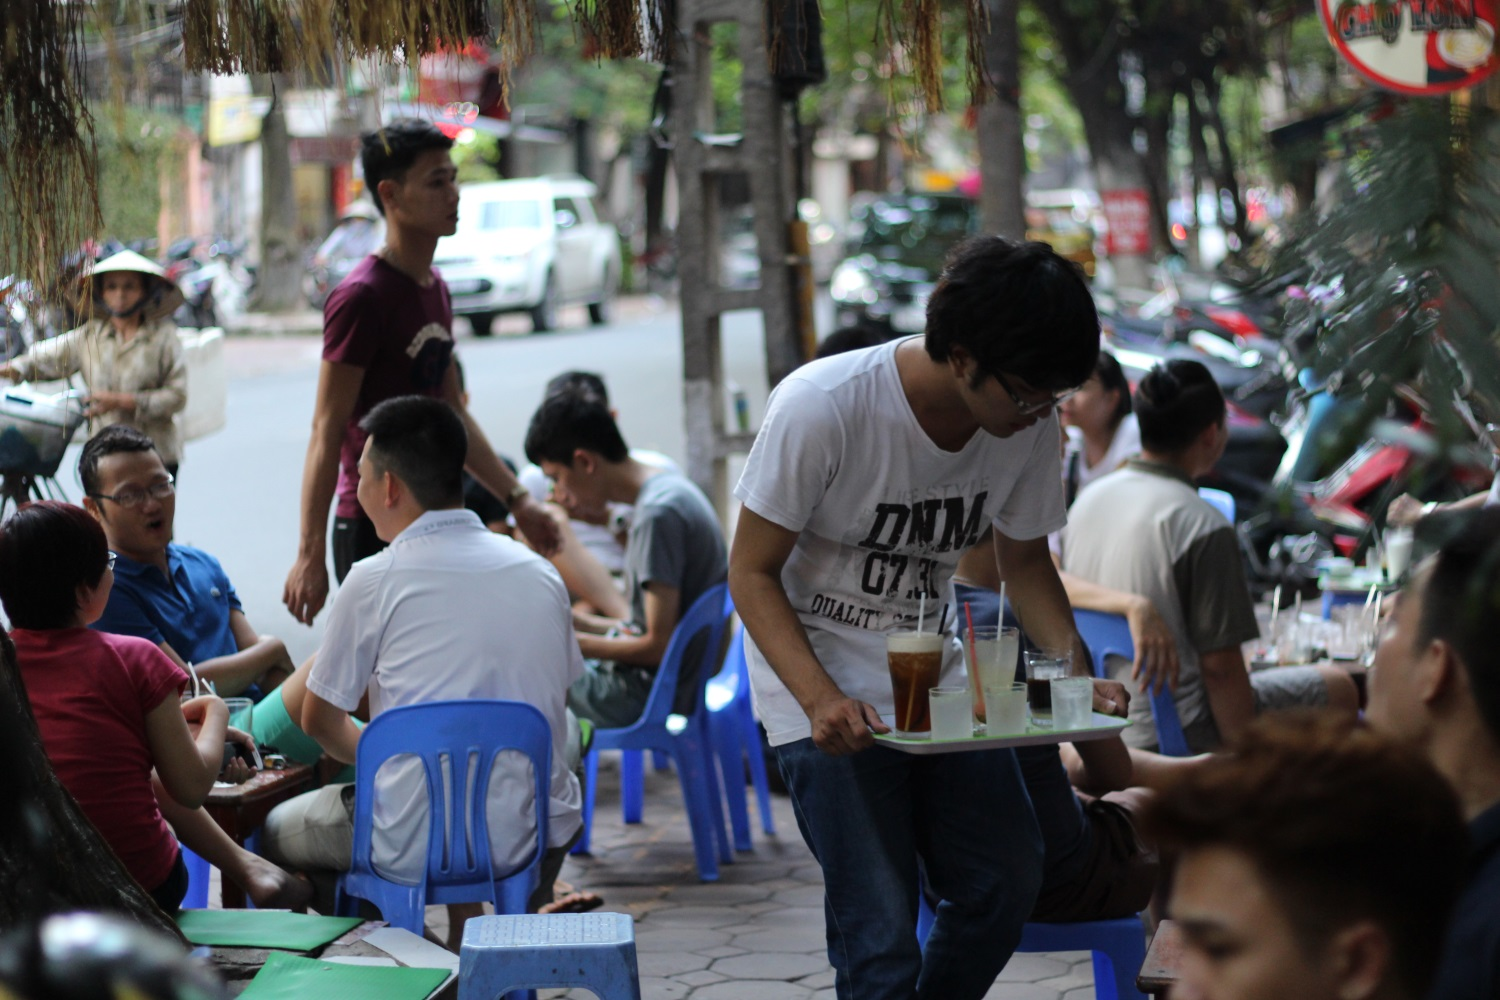 In Vietnam, you can have free wifi even in outdoor cafés